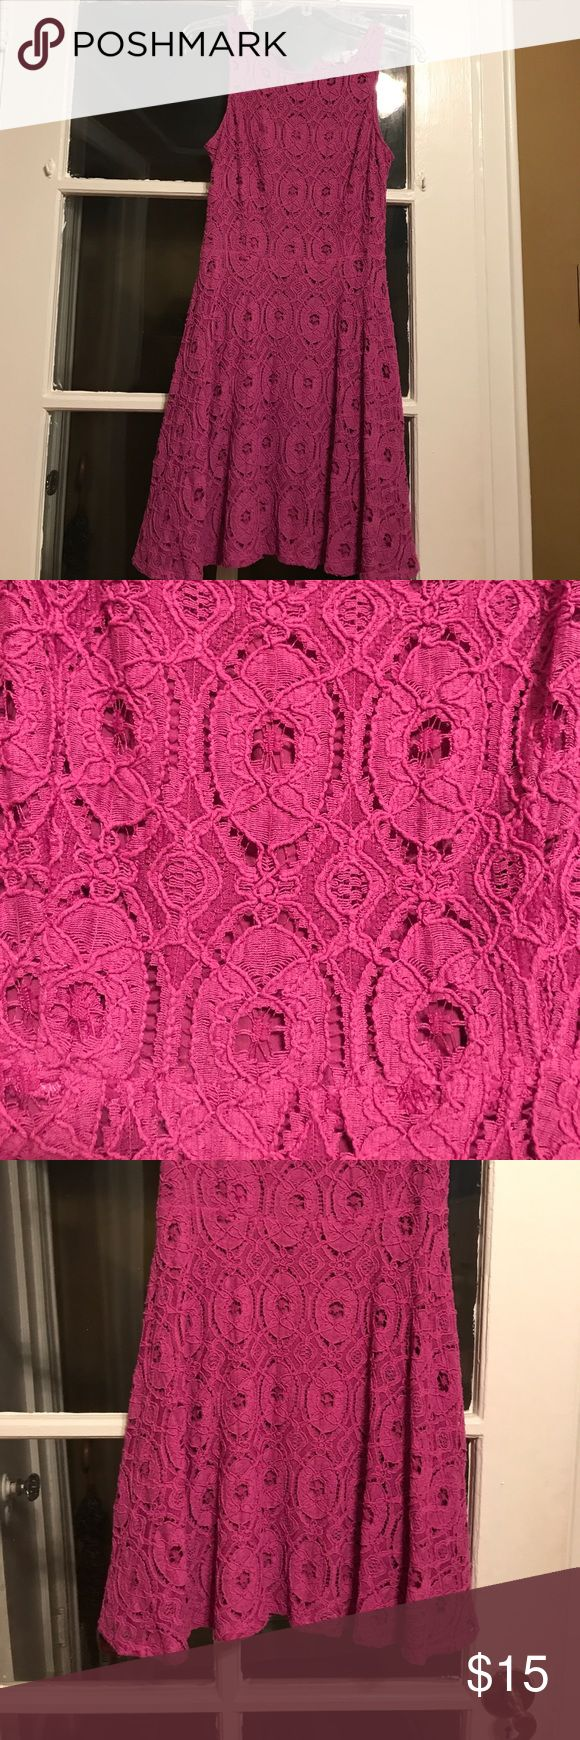 ✨SALE Lace Dress Purple/Pink Lace dress - purple/pink color- zipper up back - dress has a slip under it - there is lace see thru back from bottom down it is not see thru Dresses Midi